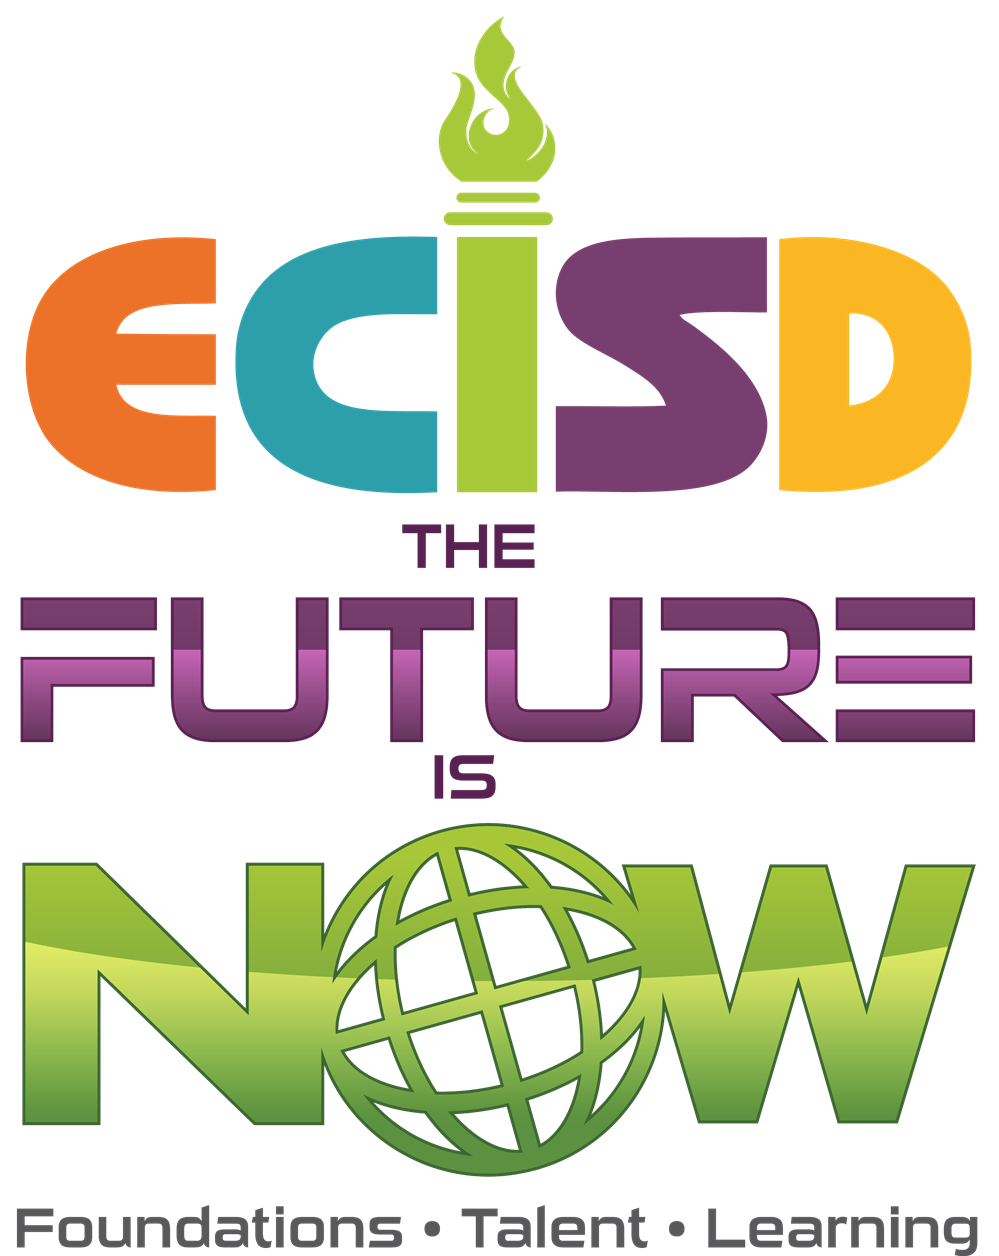 ECISD letters with additional text of The Future is Now